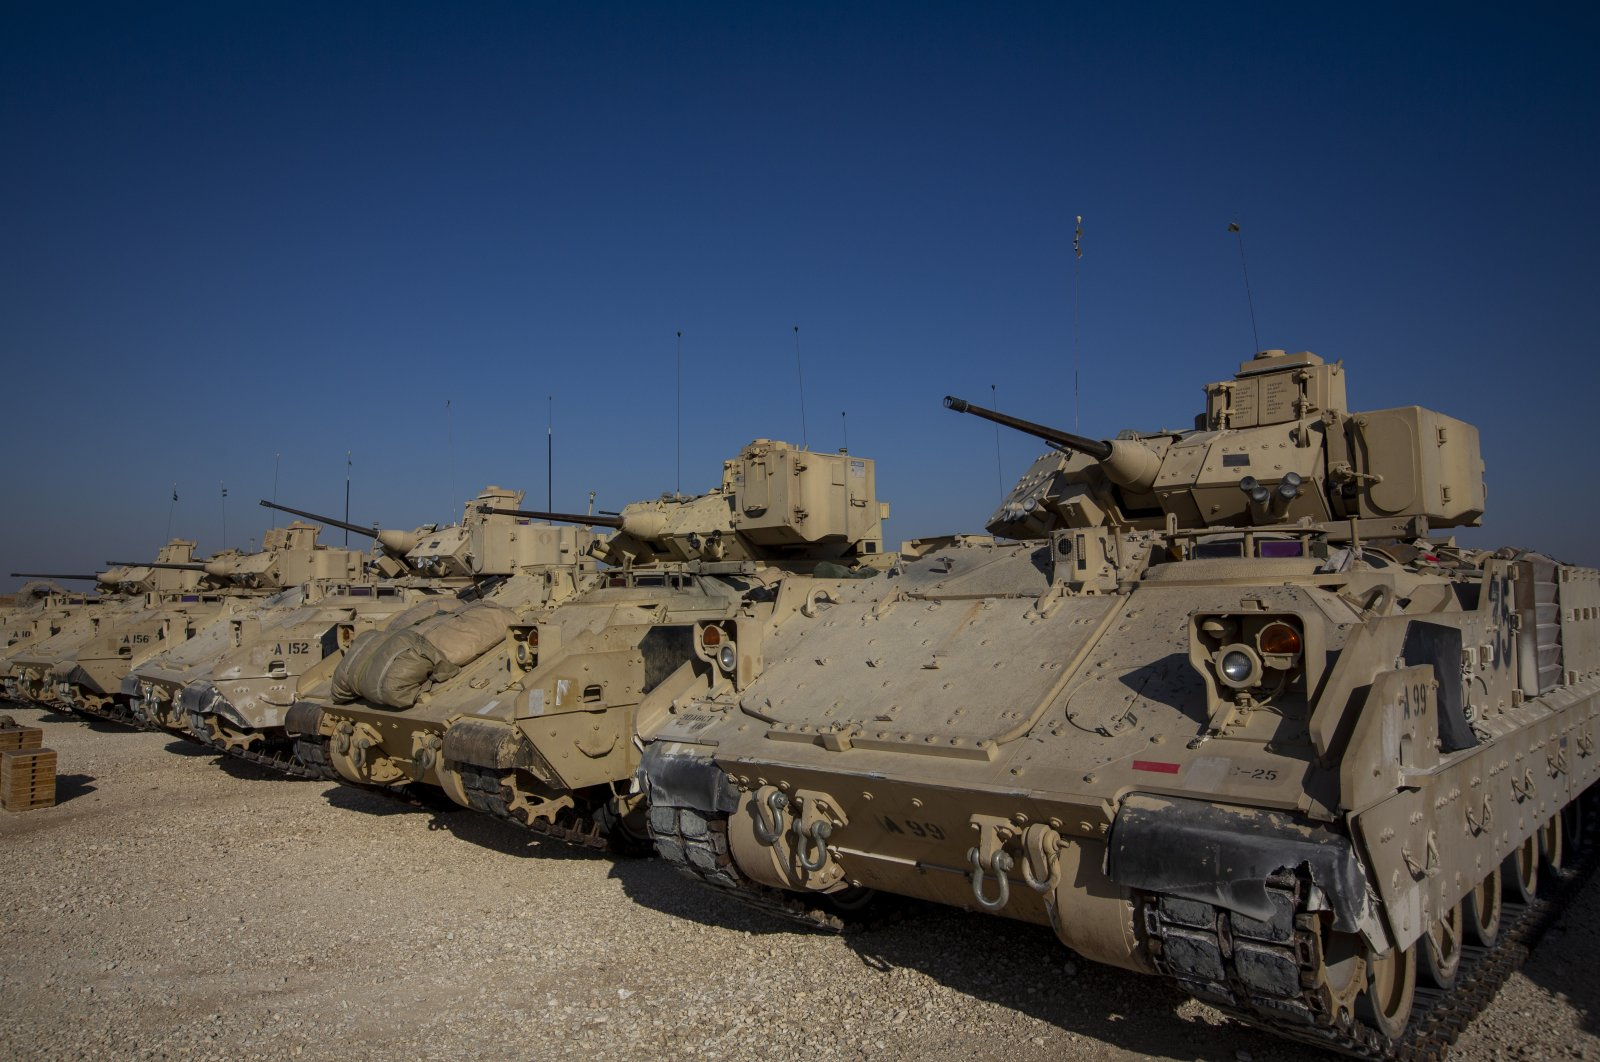 Bradley fighting vehicles are parked at a U.S. military base at an undisclosed location in northeastern Syria, Nov. 11, 2019. (AP File Photo)